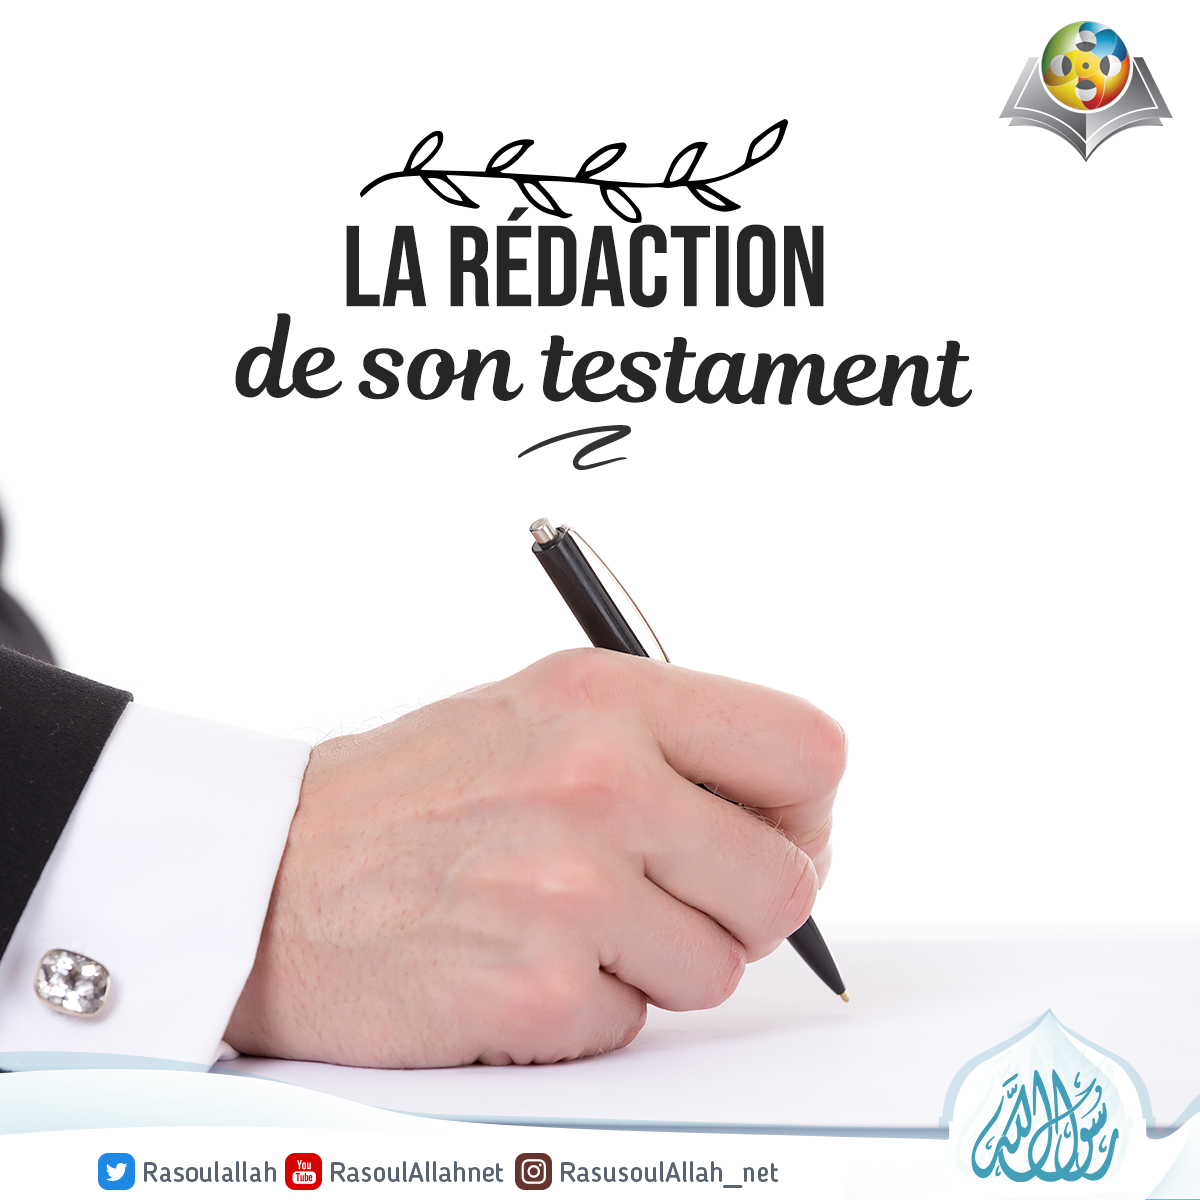 La rédaction de son testament